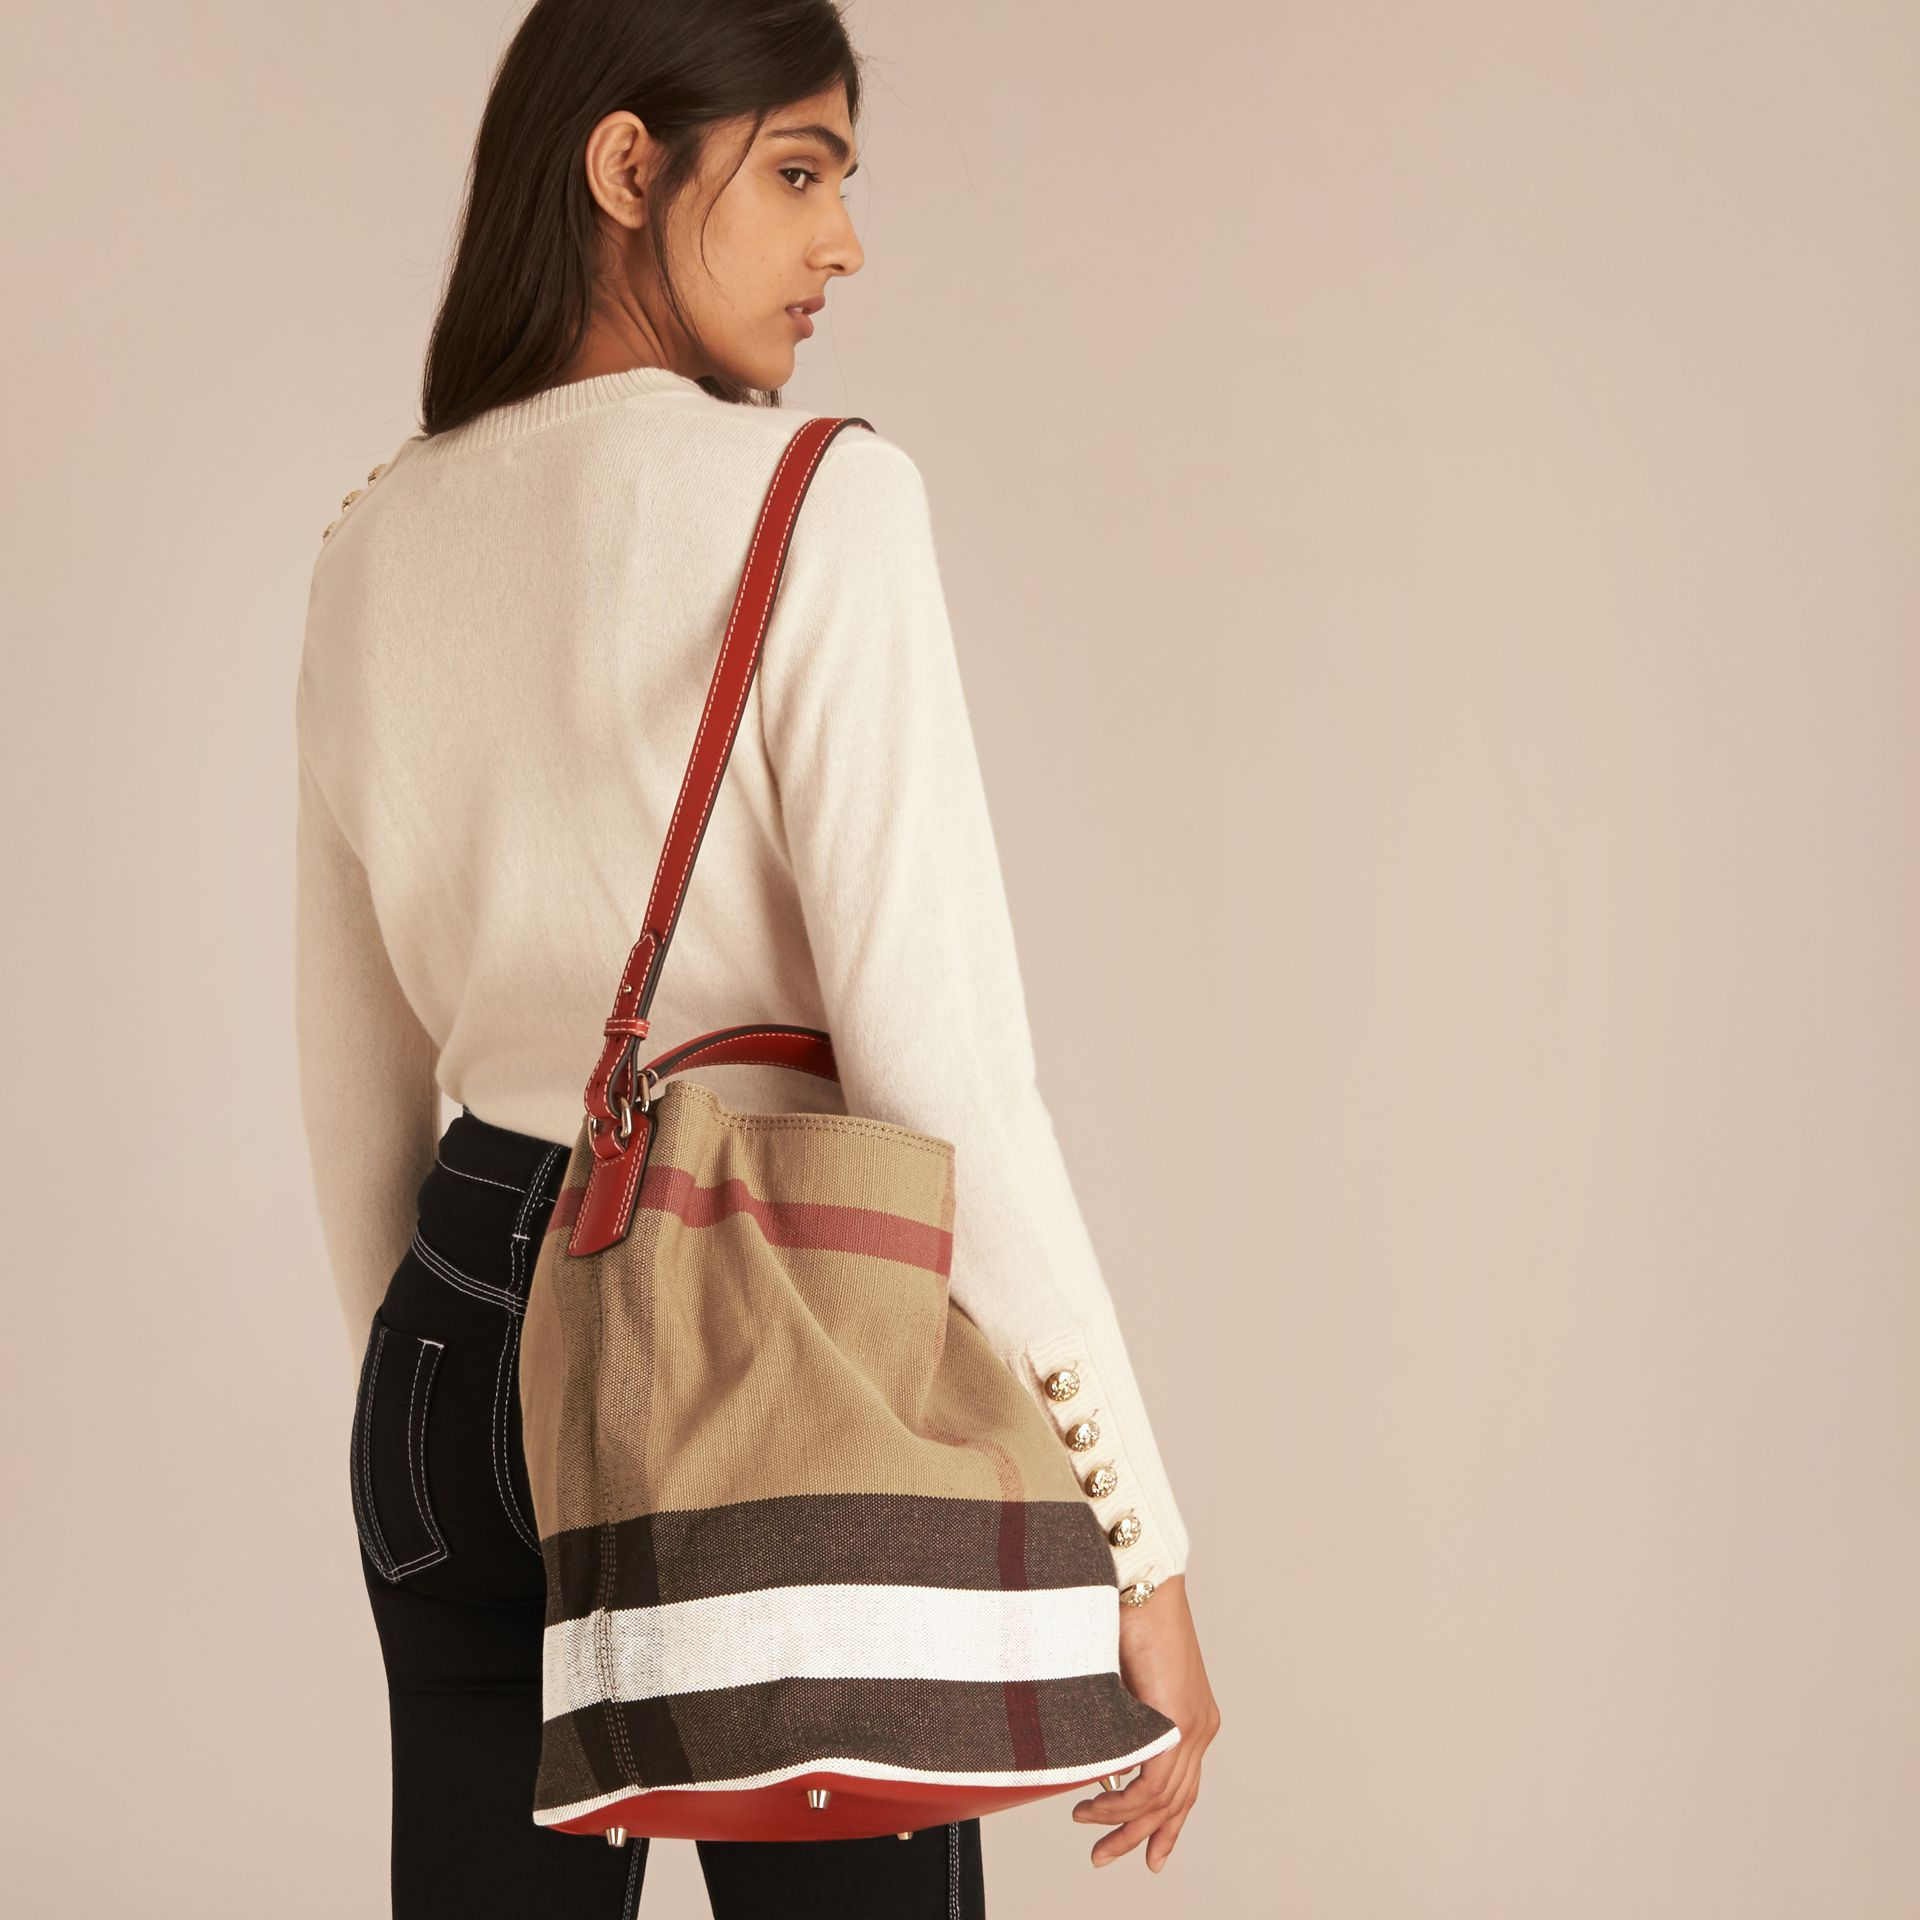 Medium Canvas Check Hobo Bag in Cadmium Red - Women | Burberry - gallery image 3